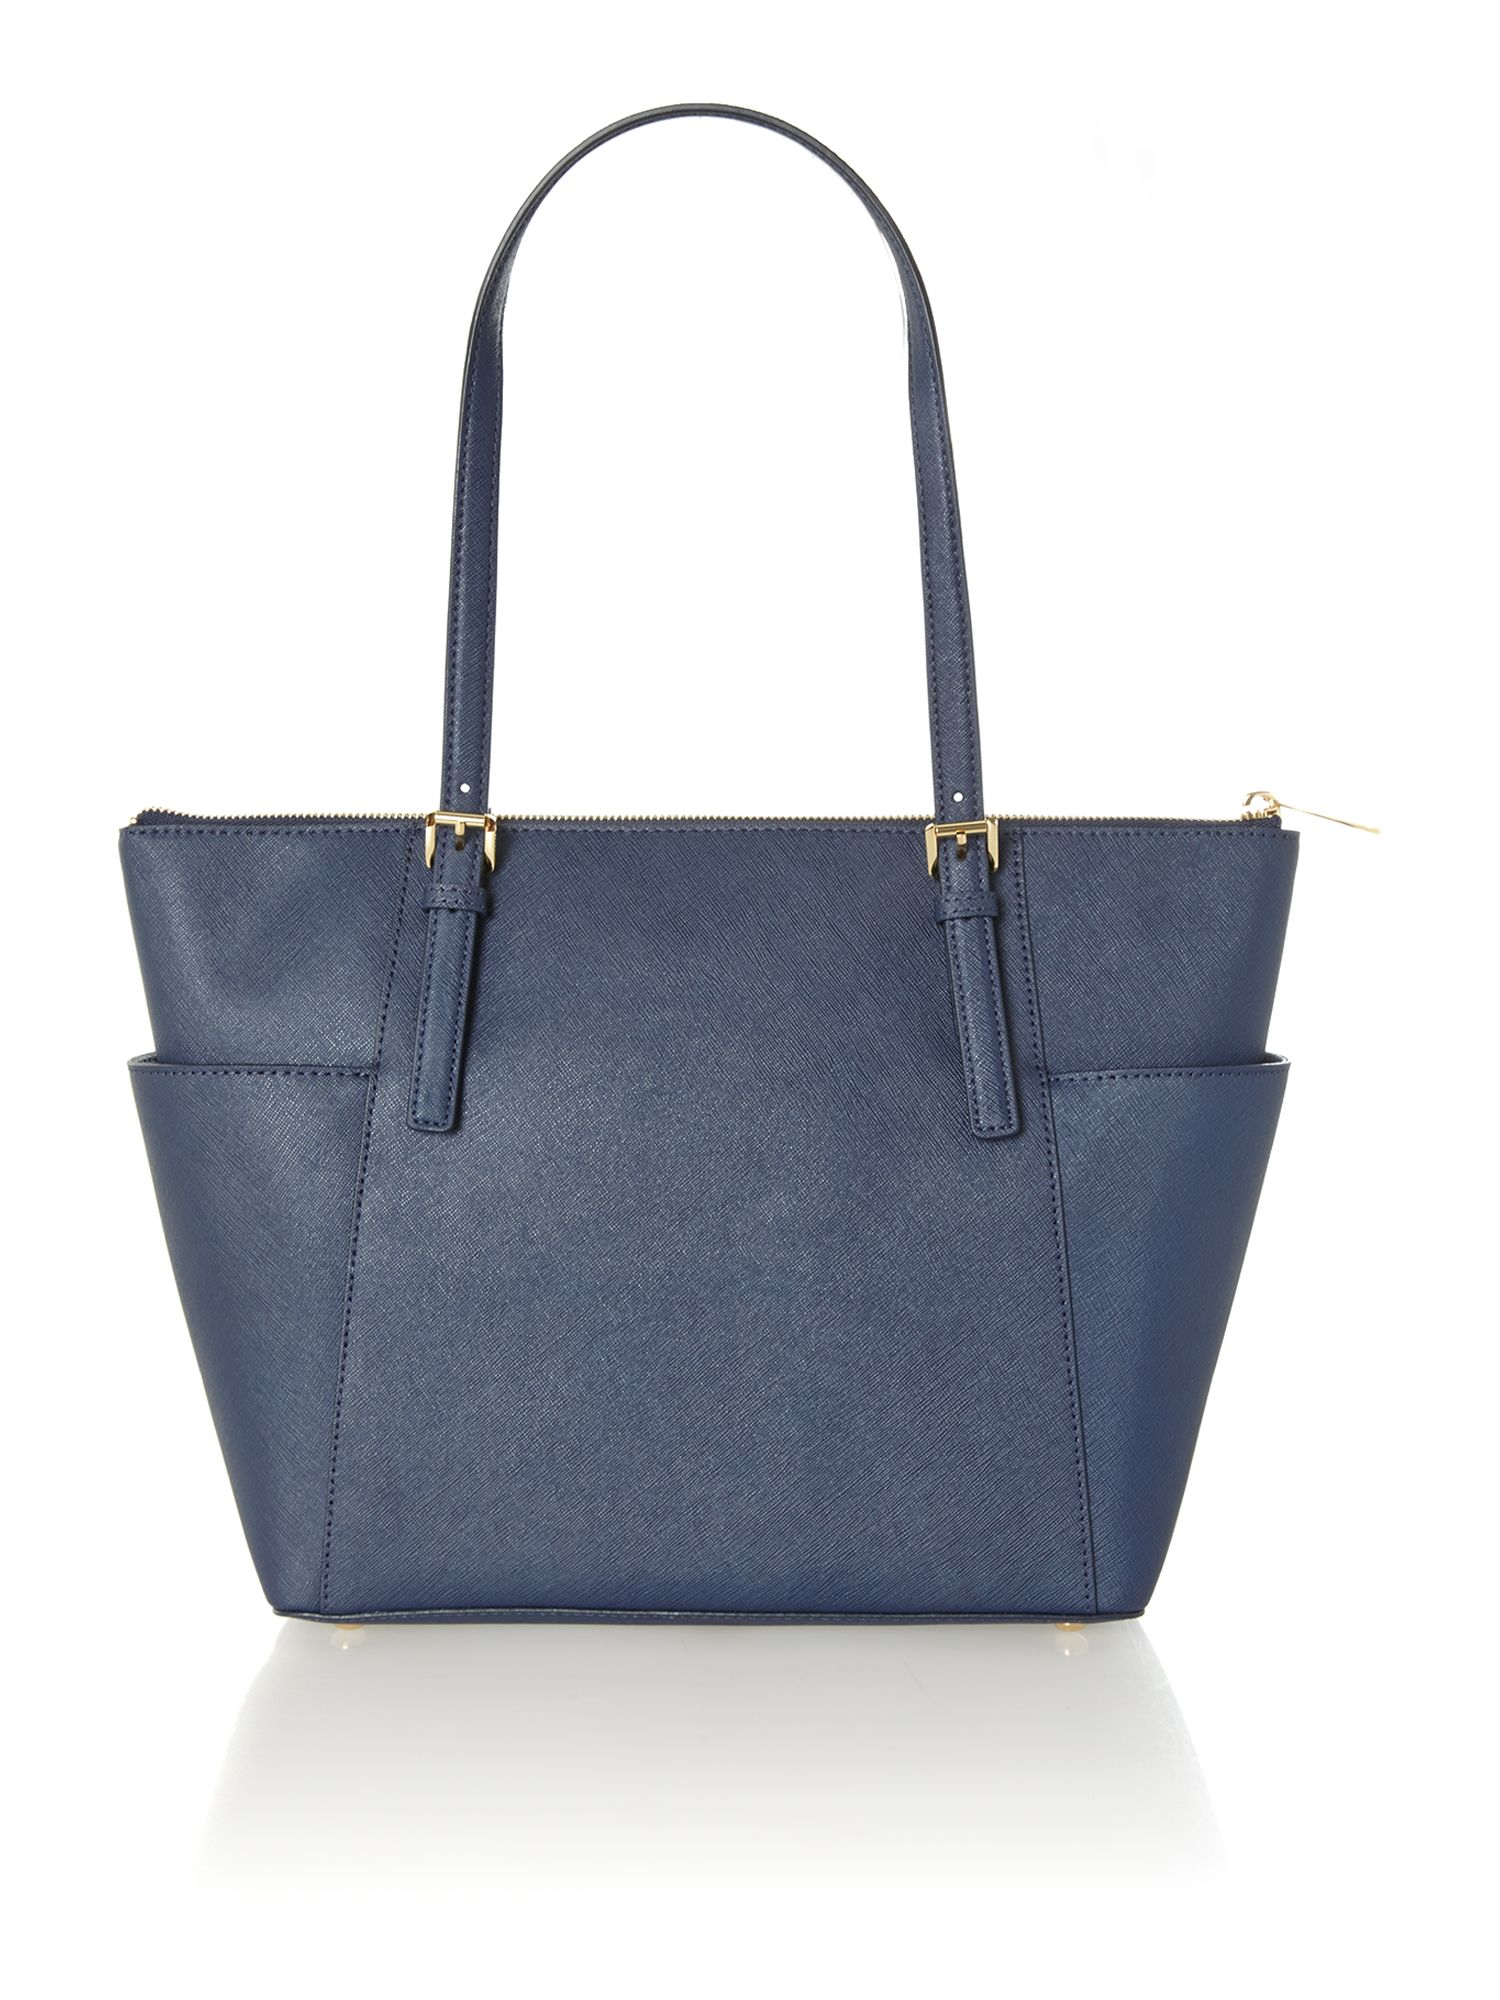 Jet set item navy small tote bag